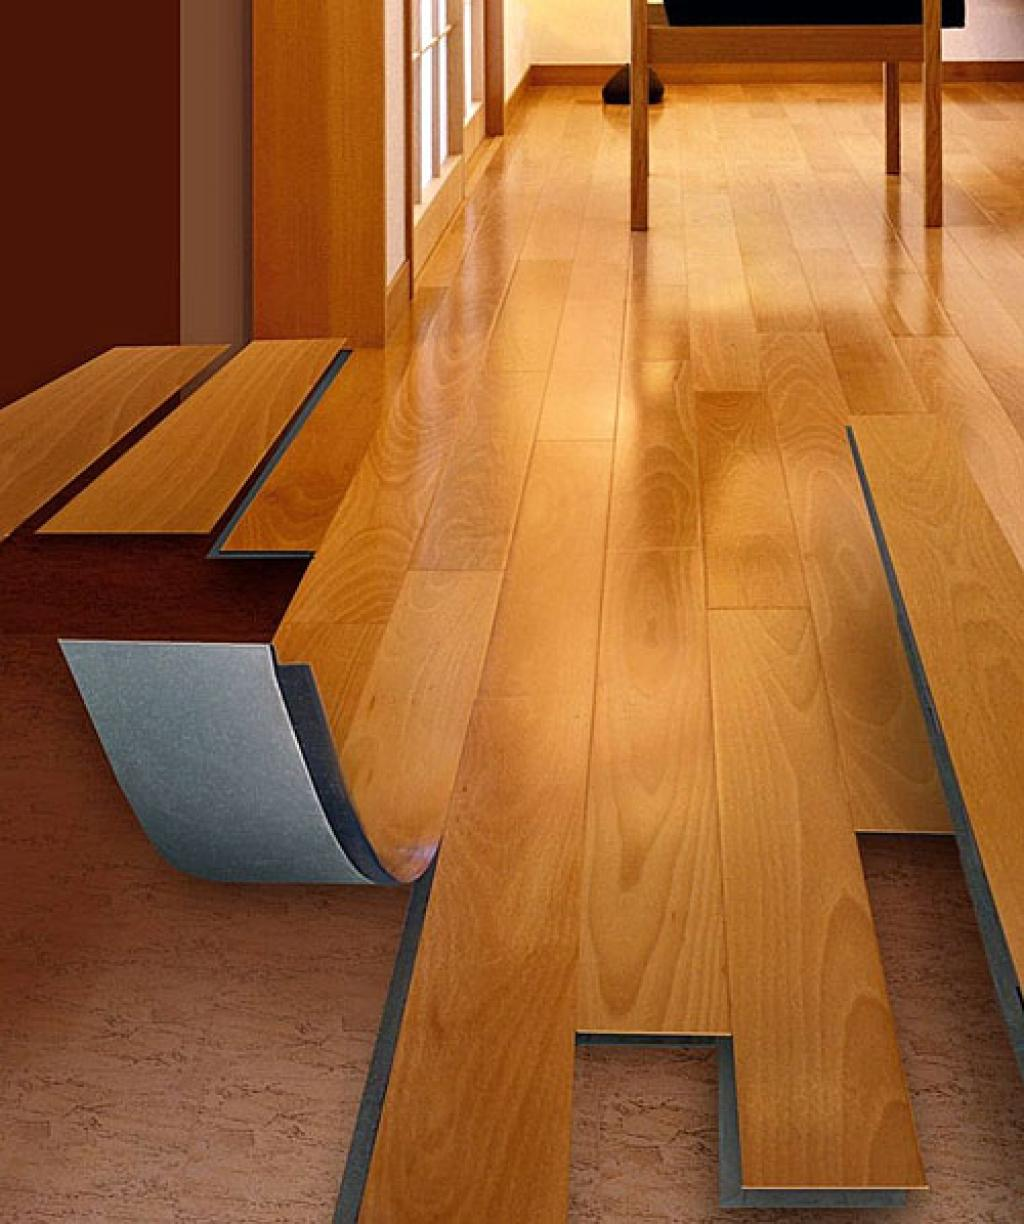 vinyl Plank Flooring Vs Engineered Hardwood 13 Images